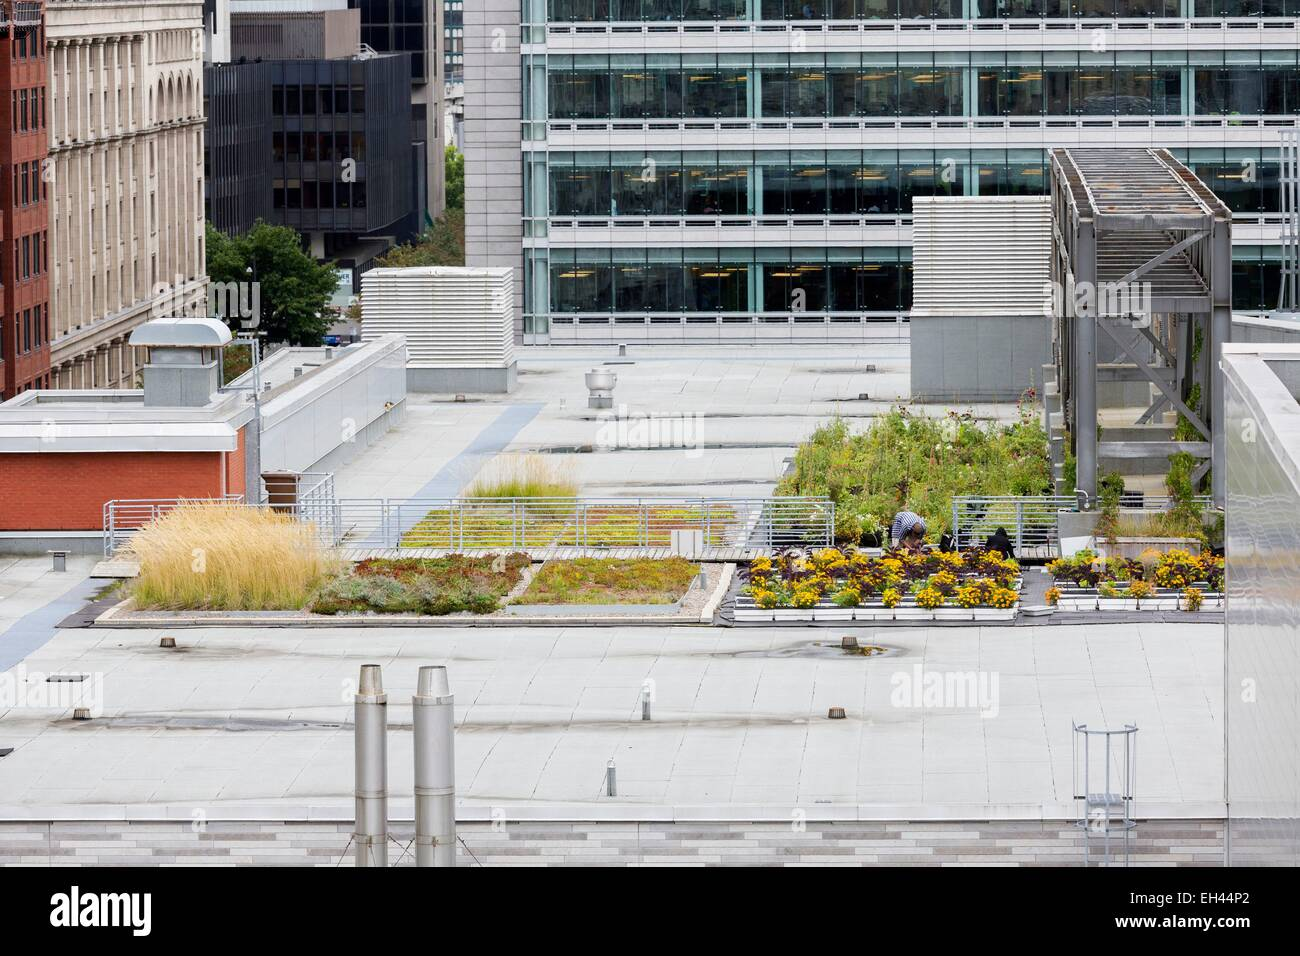 Green Roof Canada Stock Photos Amp Green Roof Canada Stock